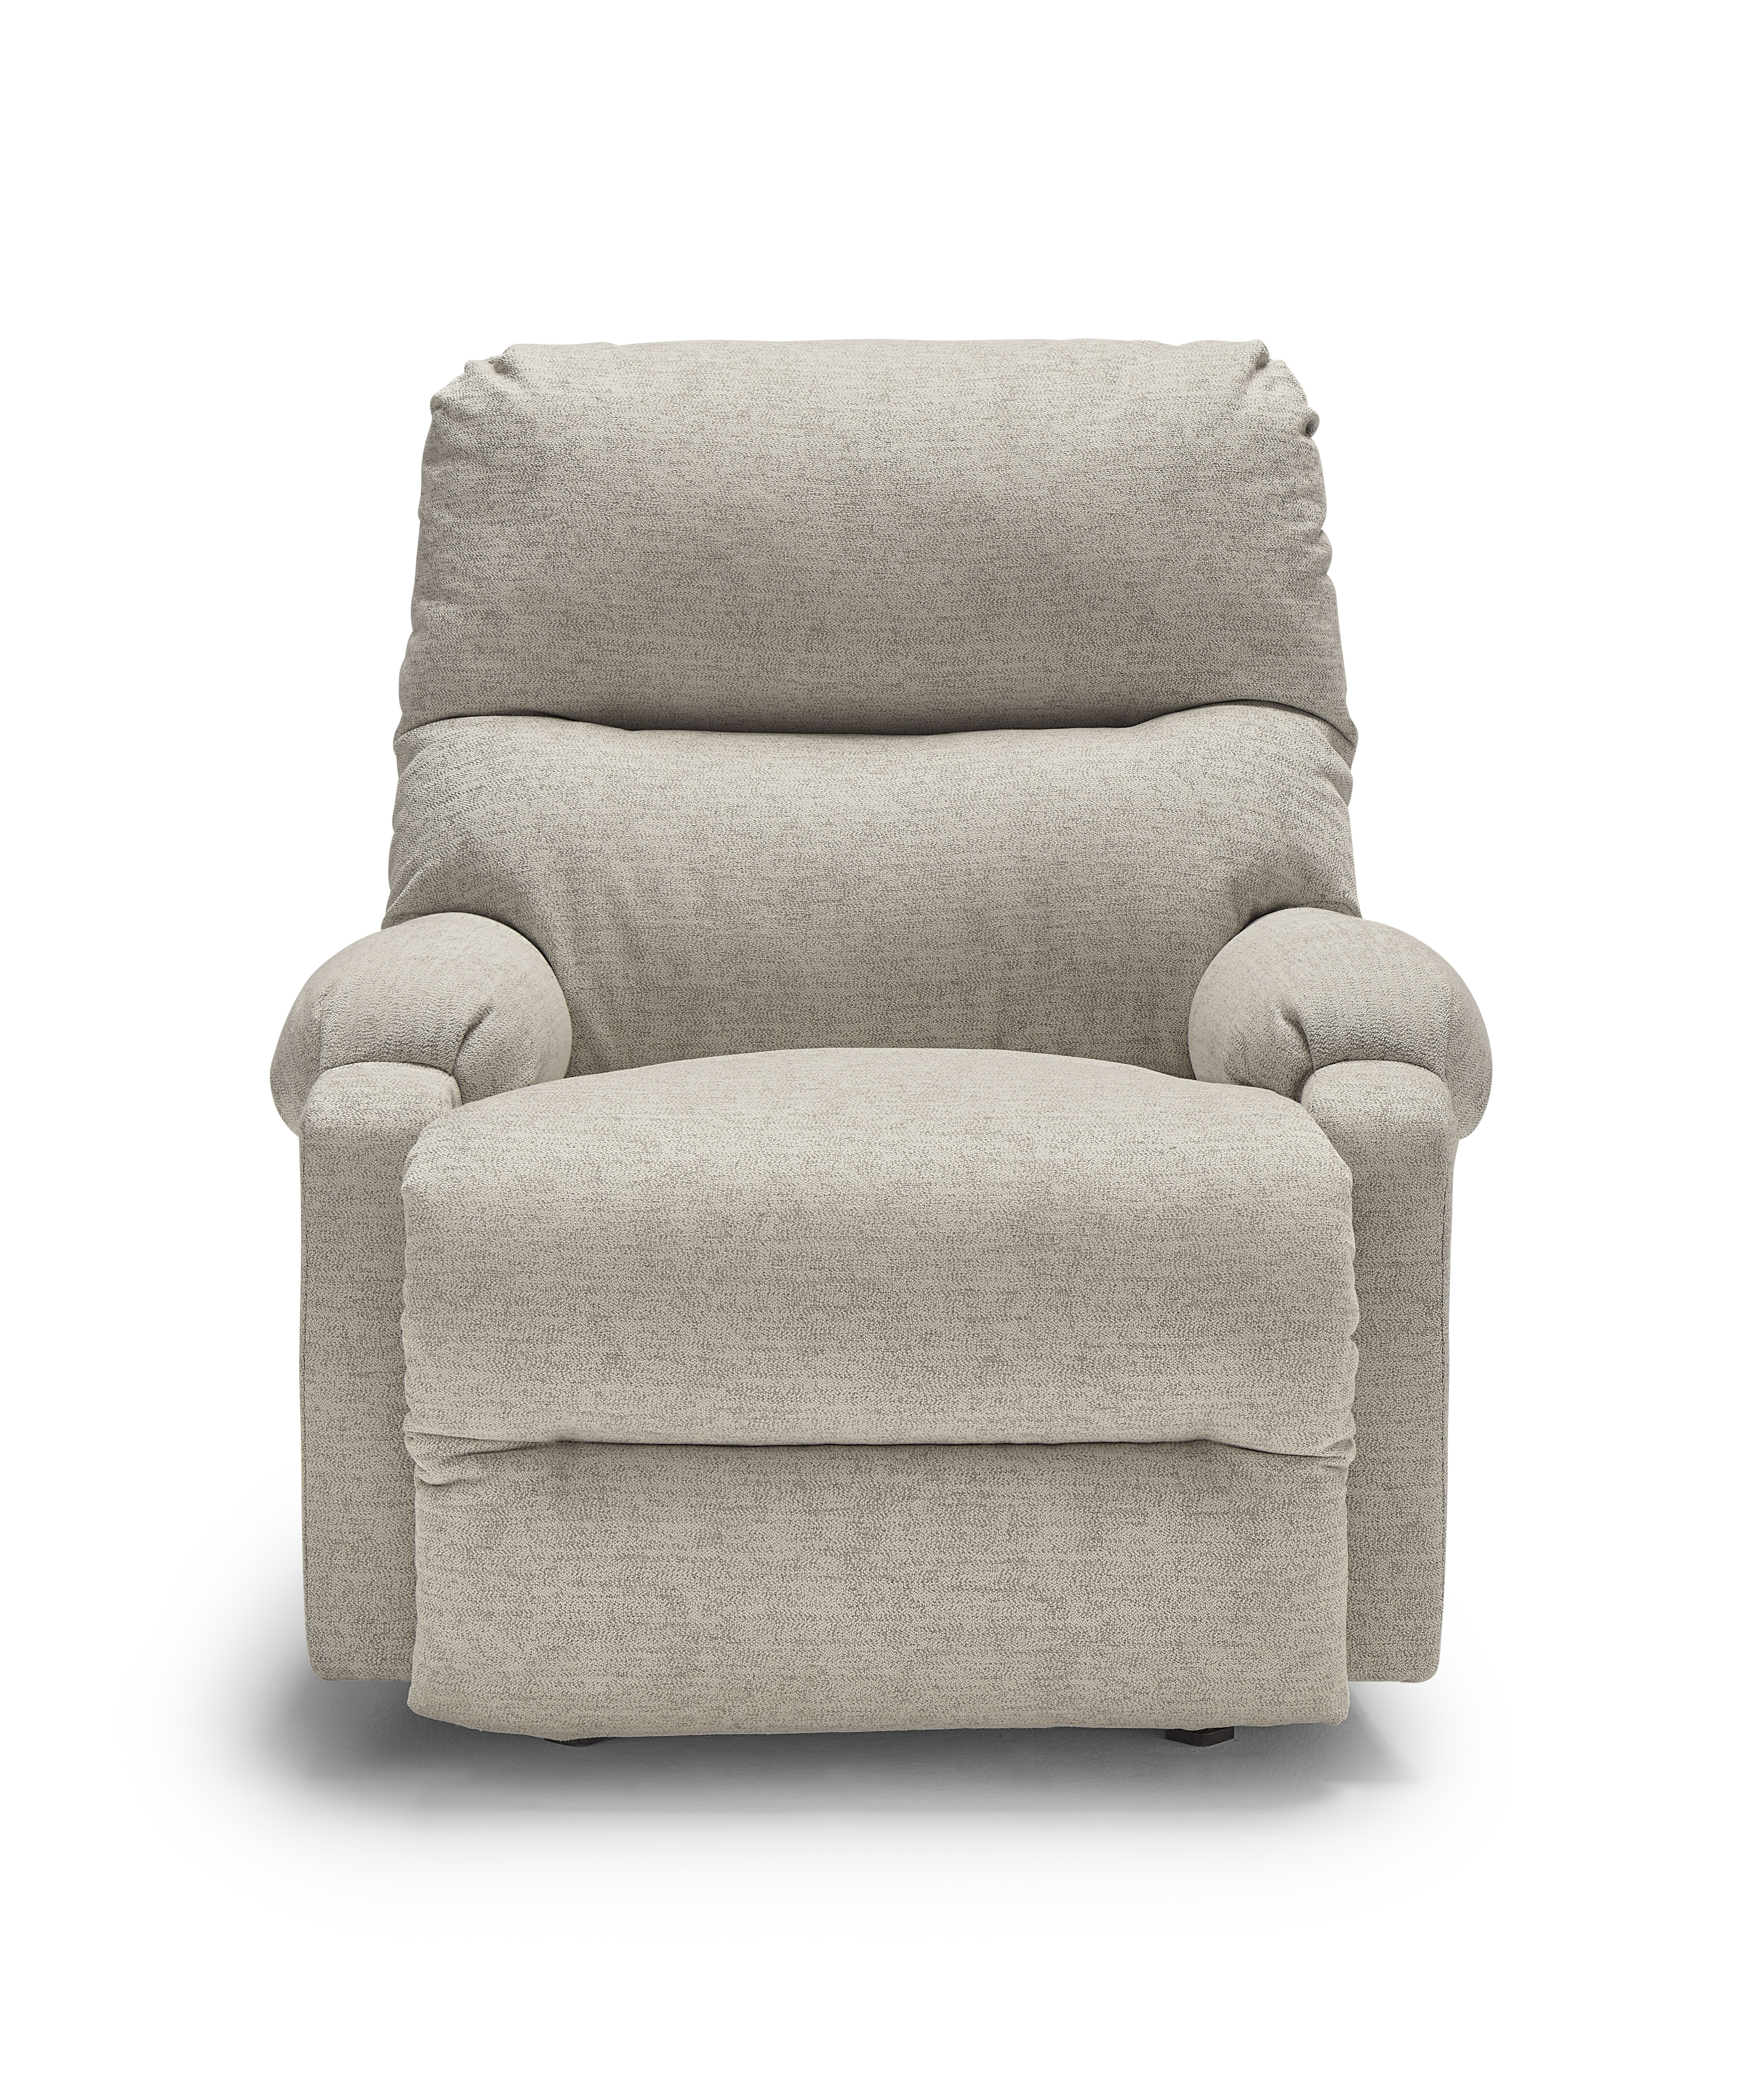 Karen Space Saver Recliner by Best Home Furnishings at Gill Brothers Furniture